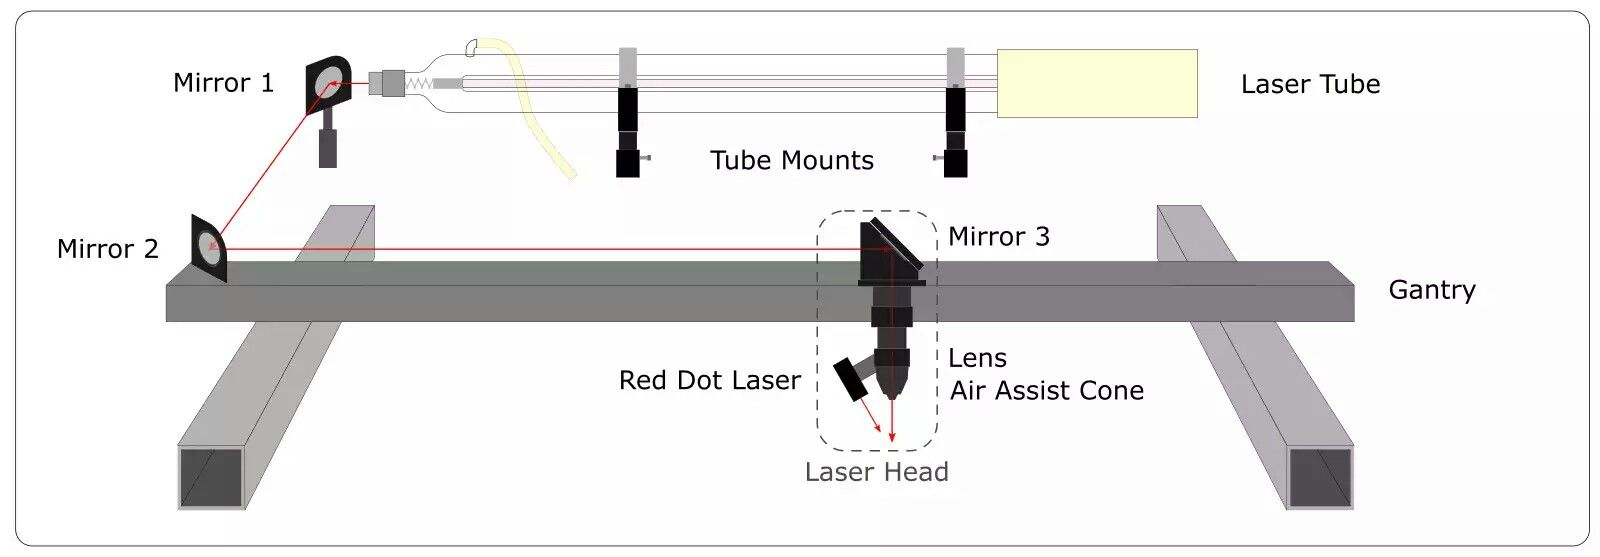 medium resolution of laser terminology